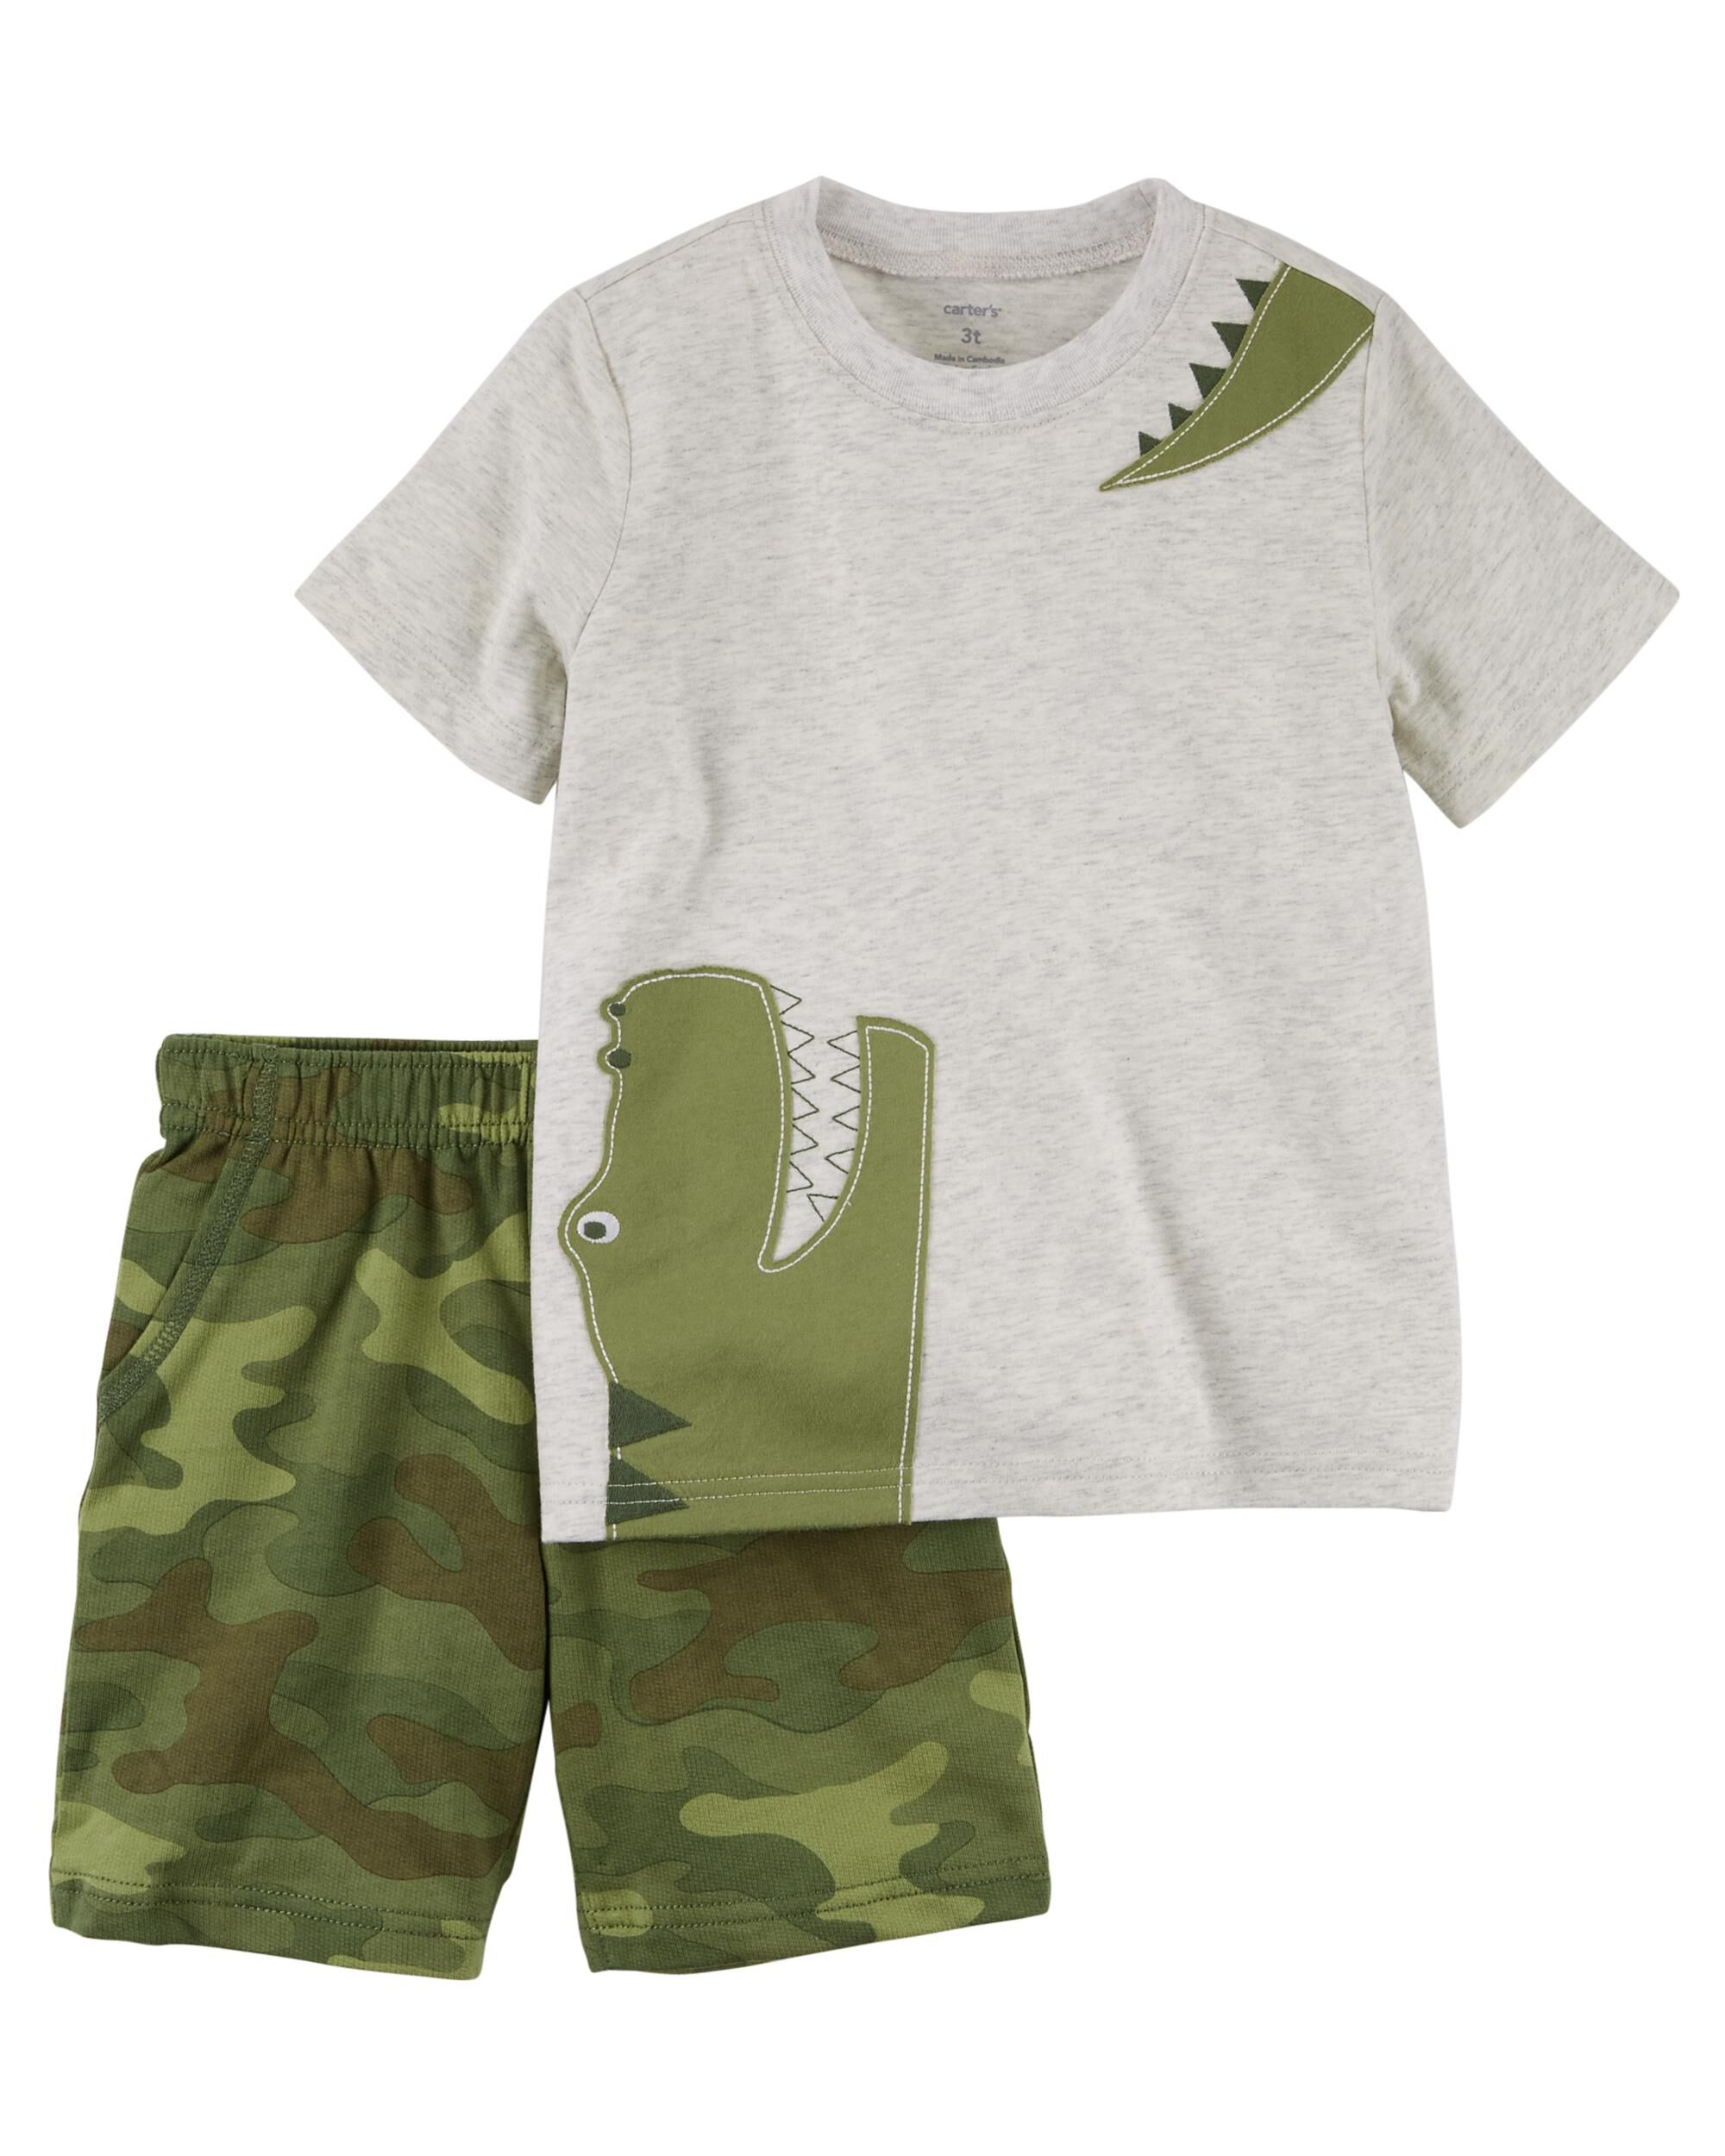 Carters 2 Piece Jersey Top /& French Terry Short Set 12M